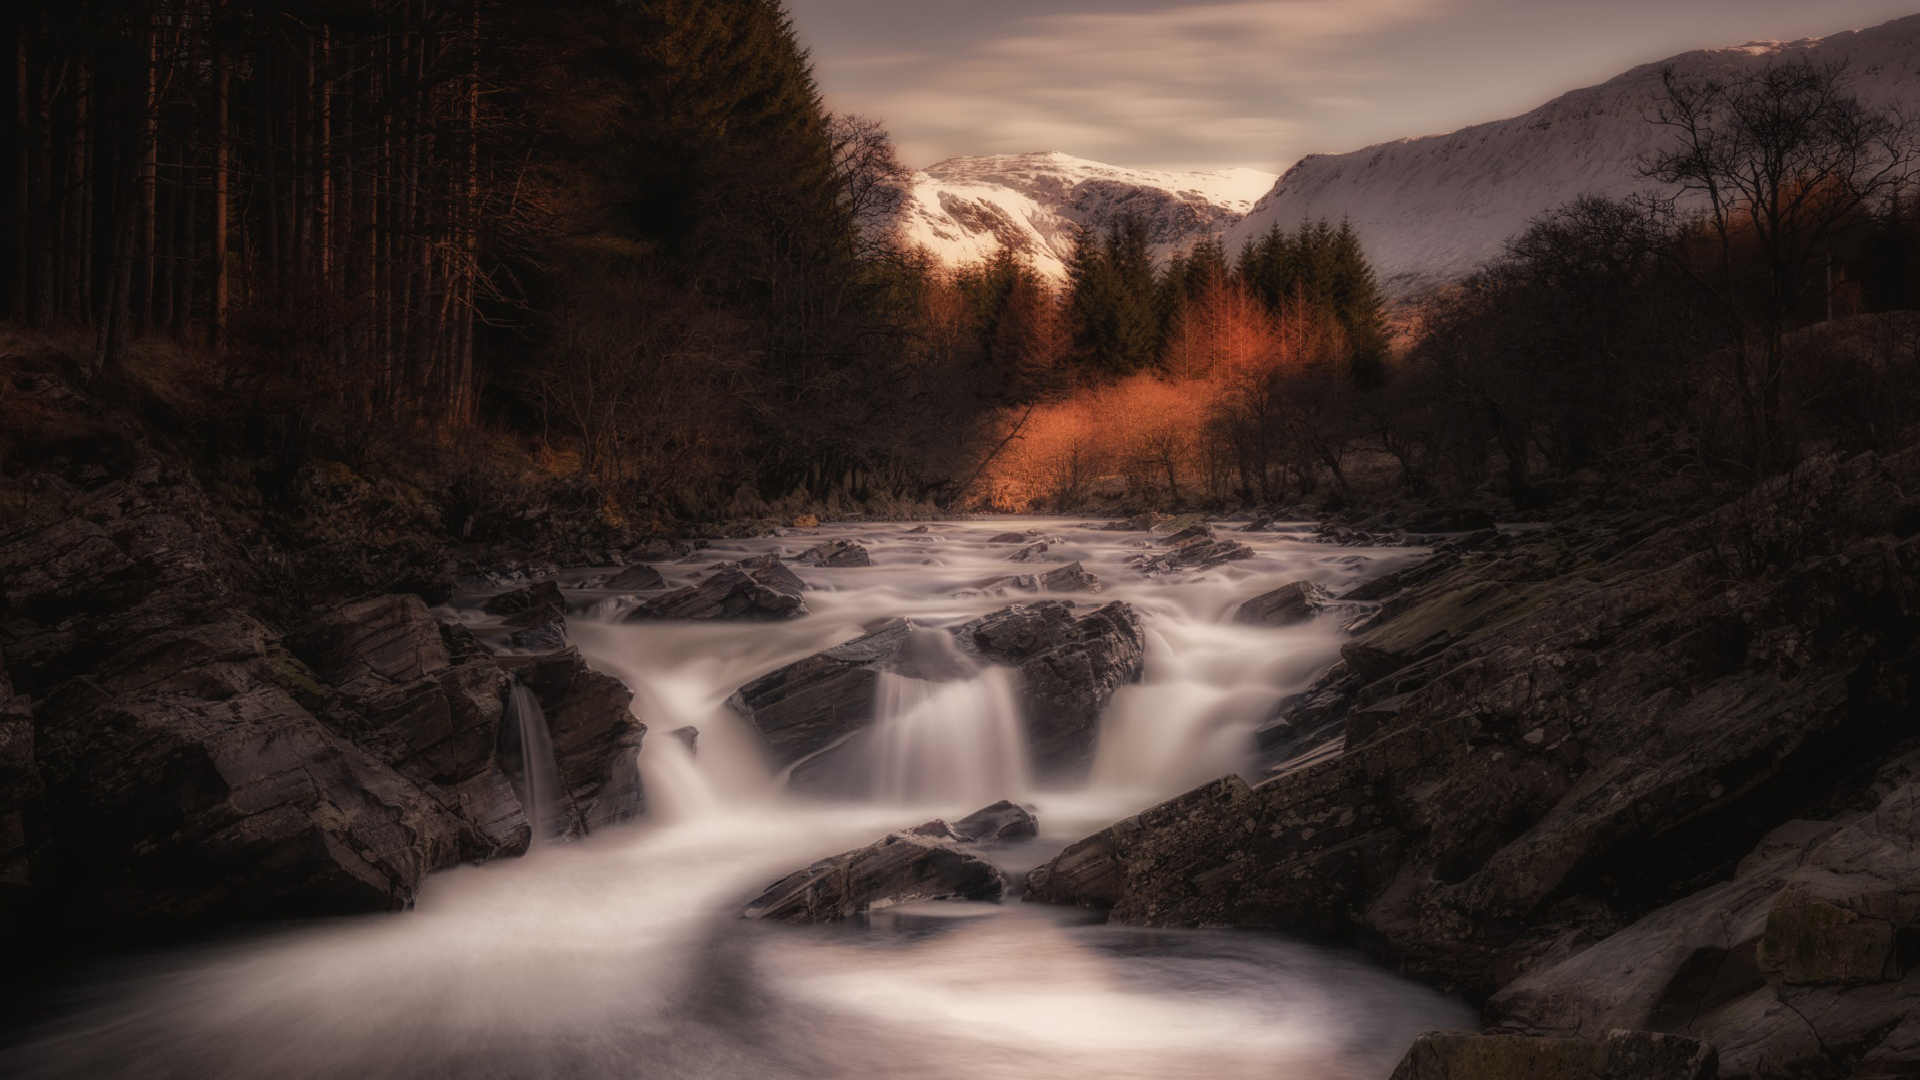 rapids,creation,scene,autumn,natural state,existence,natural phenomenon,landscape,mountain,landscape,,state of nature,orchy,scotland,snow,long,longexposure,forest,scenery,nature,macrocosm,fall,world,samsung,universe,cosmos,river